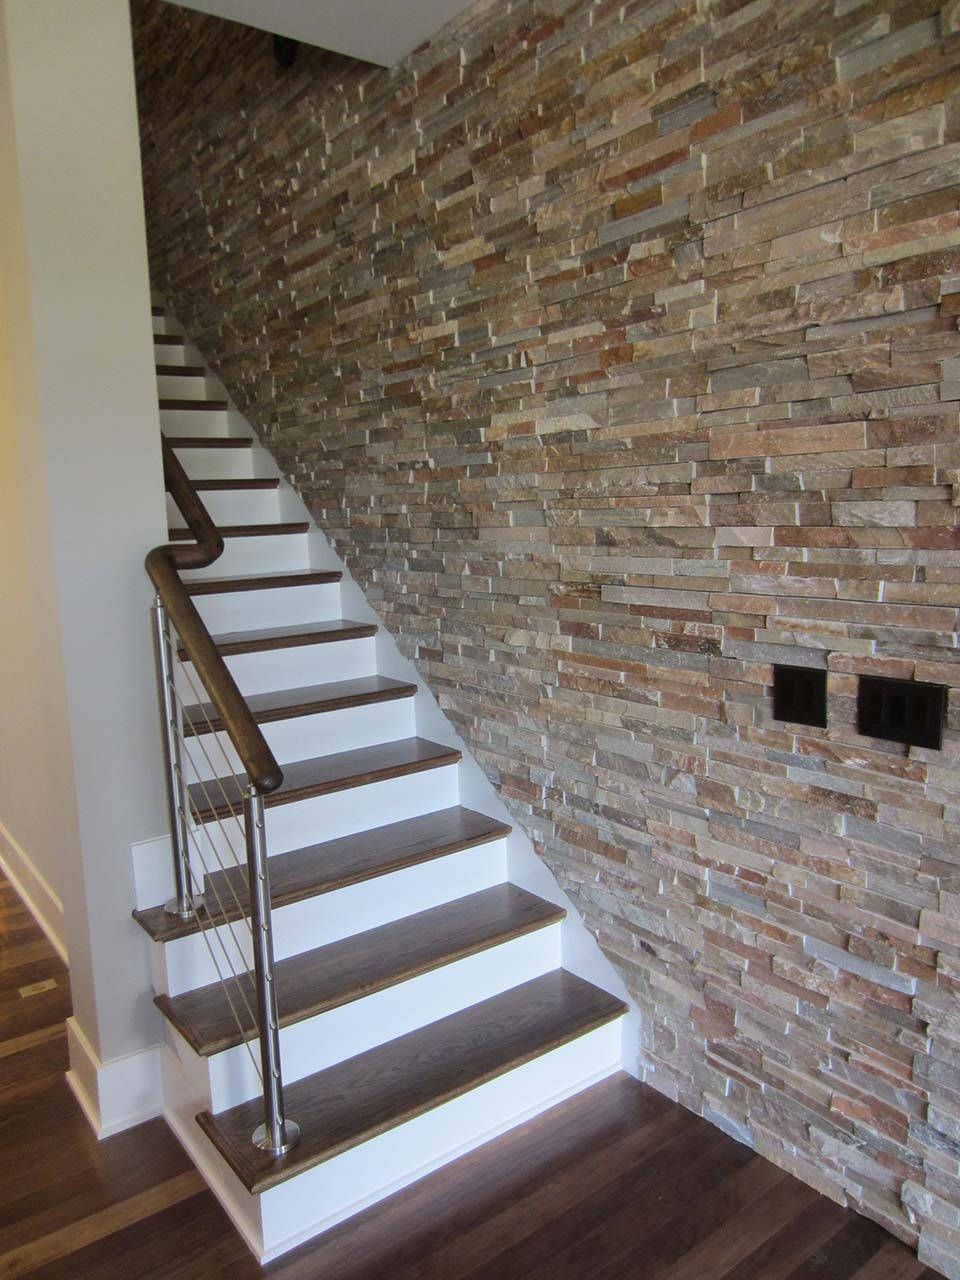 Cable Railing Systems Southern Staircase Artistic Stairs | Modern Cable Stair Railing | Entry Foyer | Staircase Remodel | Stair Treads | Glass Railing | Deck Railing